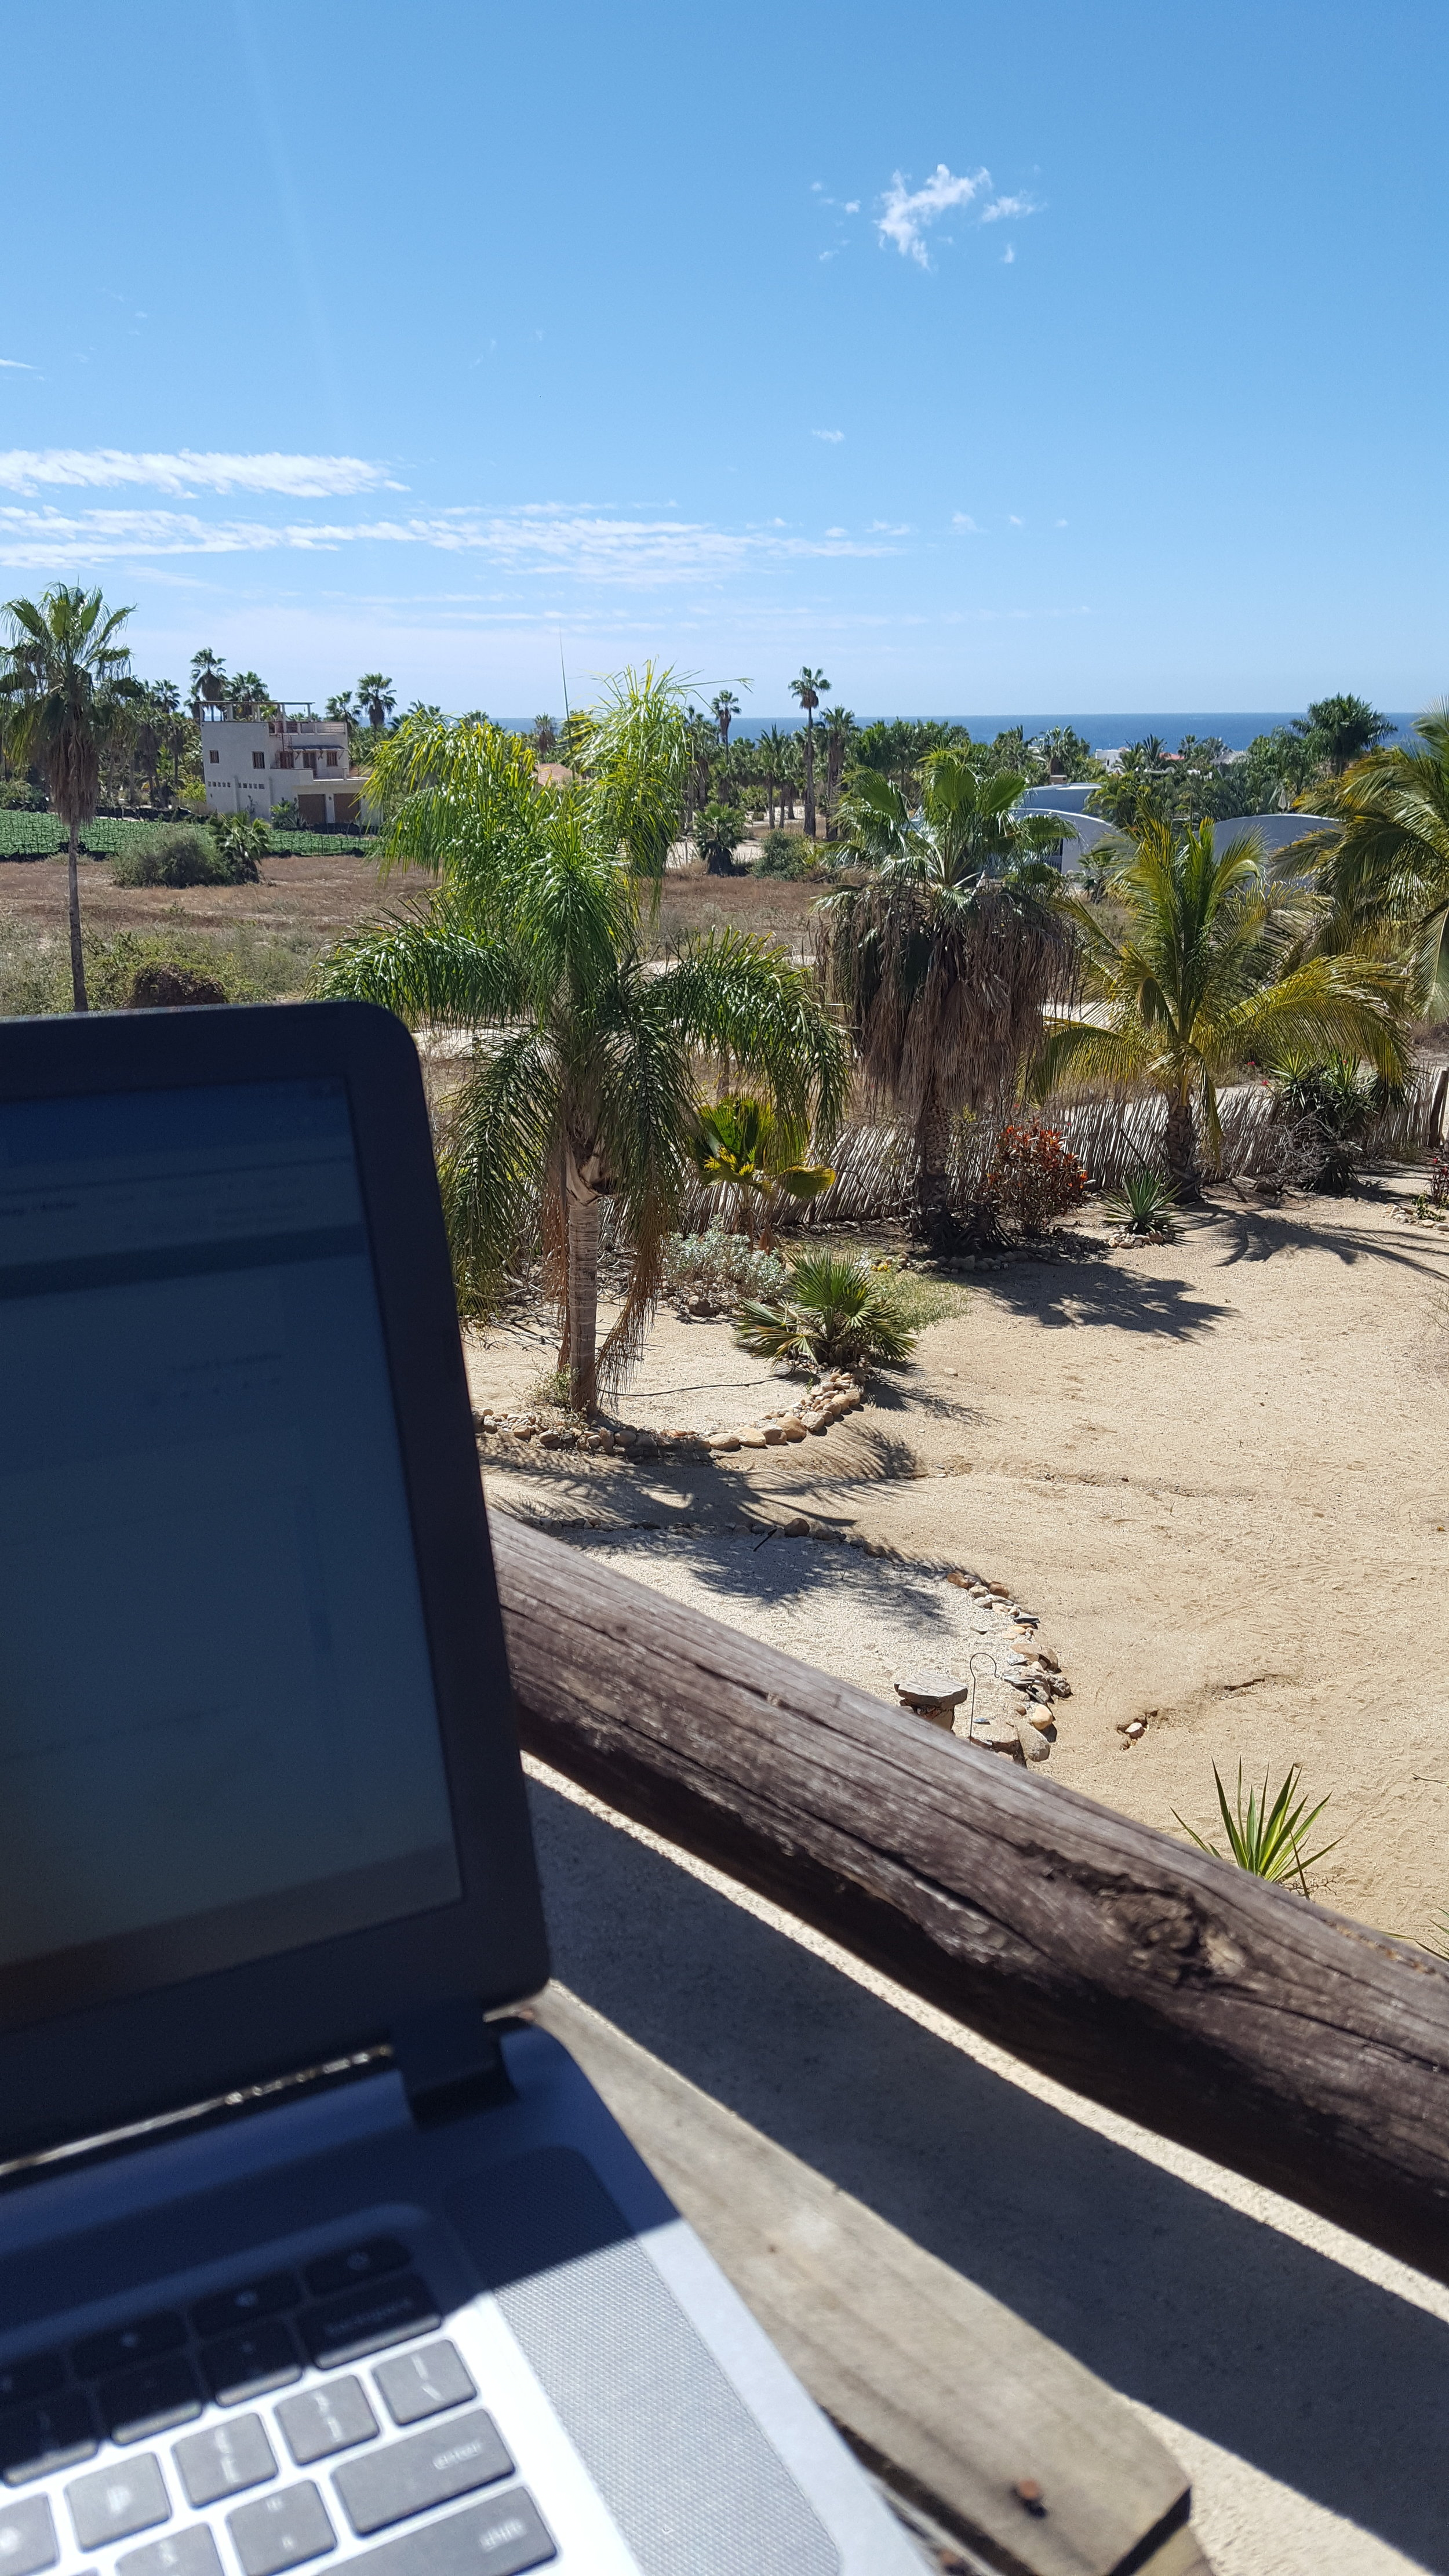 Work with a view!